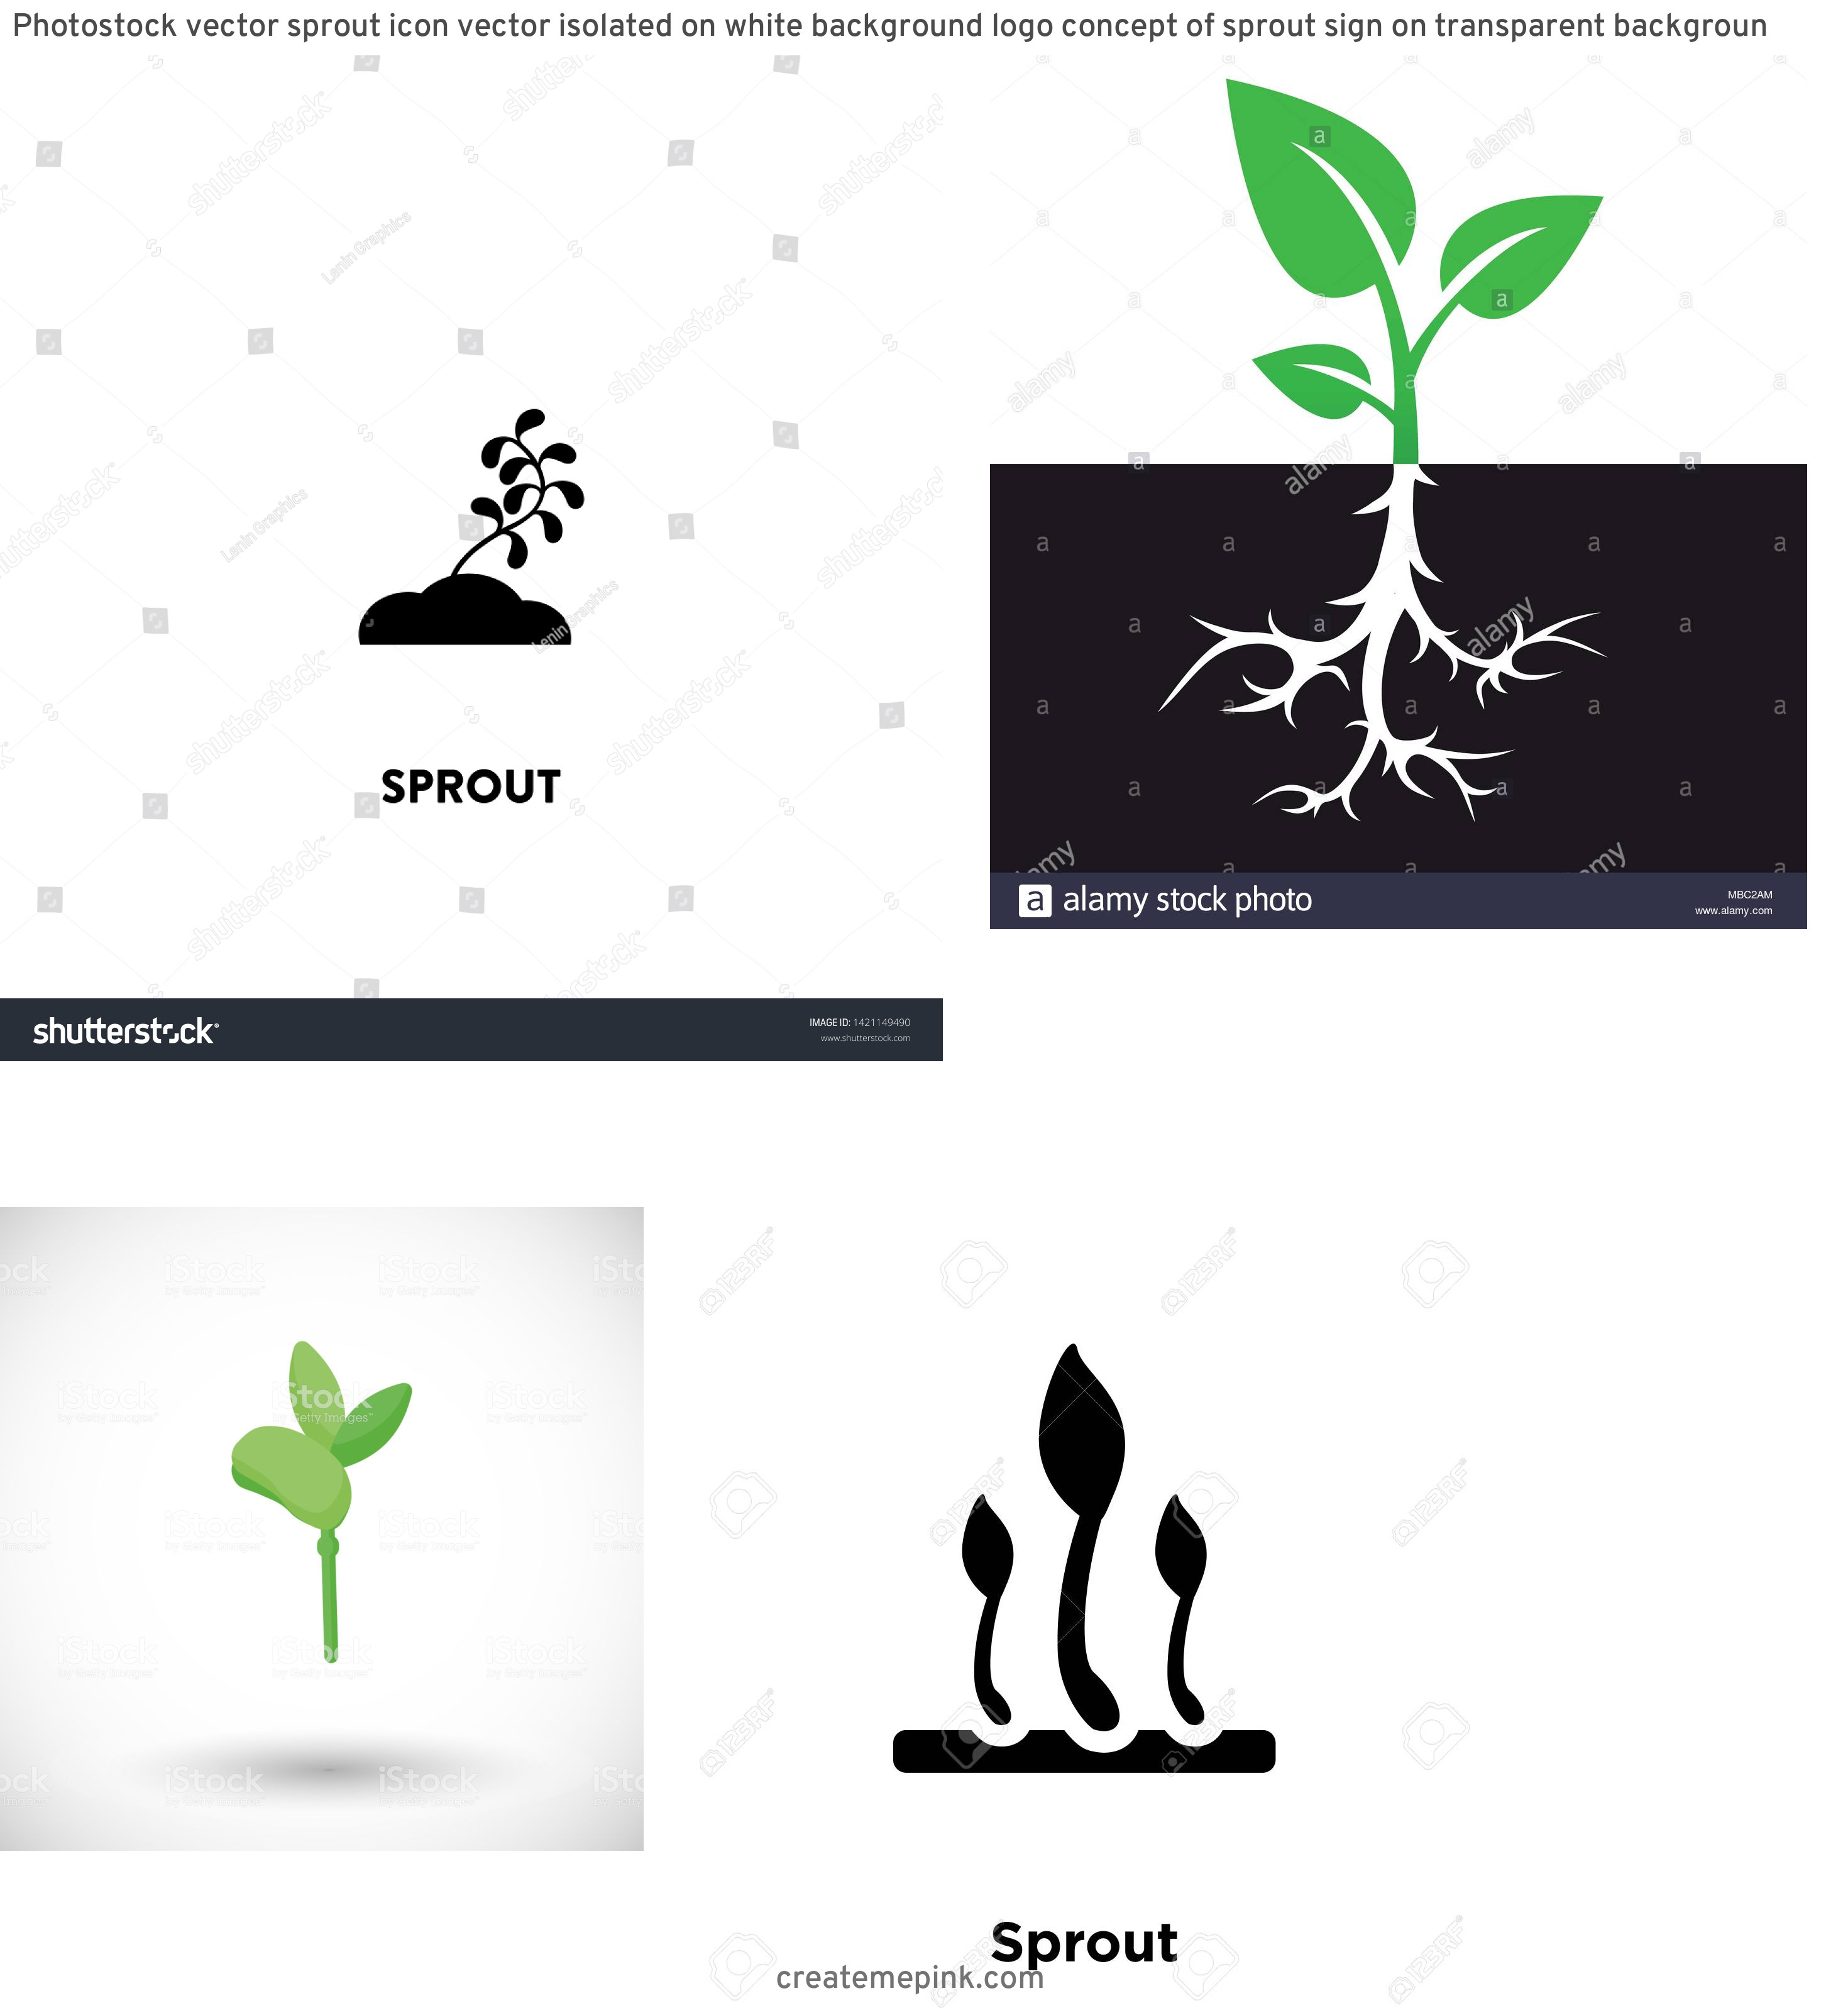 Sprout Icon Vector: Photostock Vector Sprout Icon Vector Isolated On White Background Logo Concept Of Sprout Sign On Transparent Backgroun